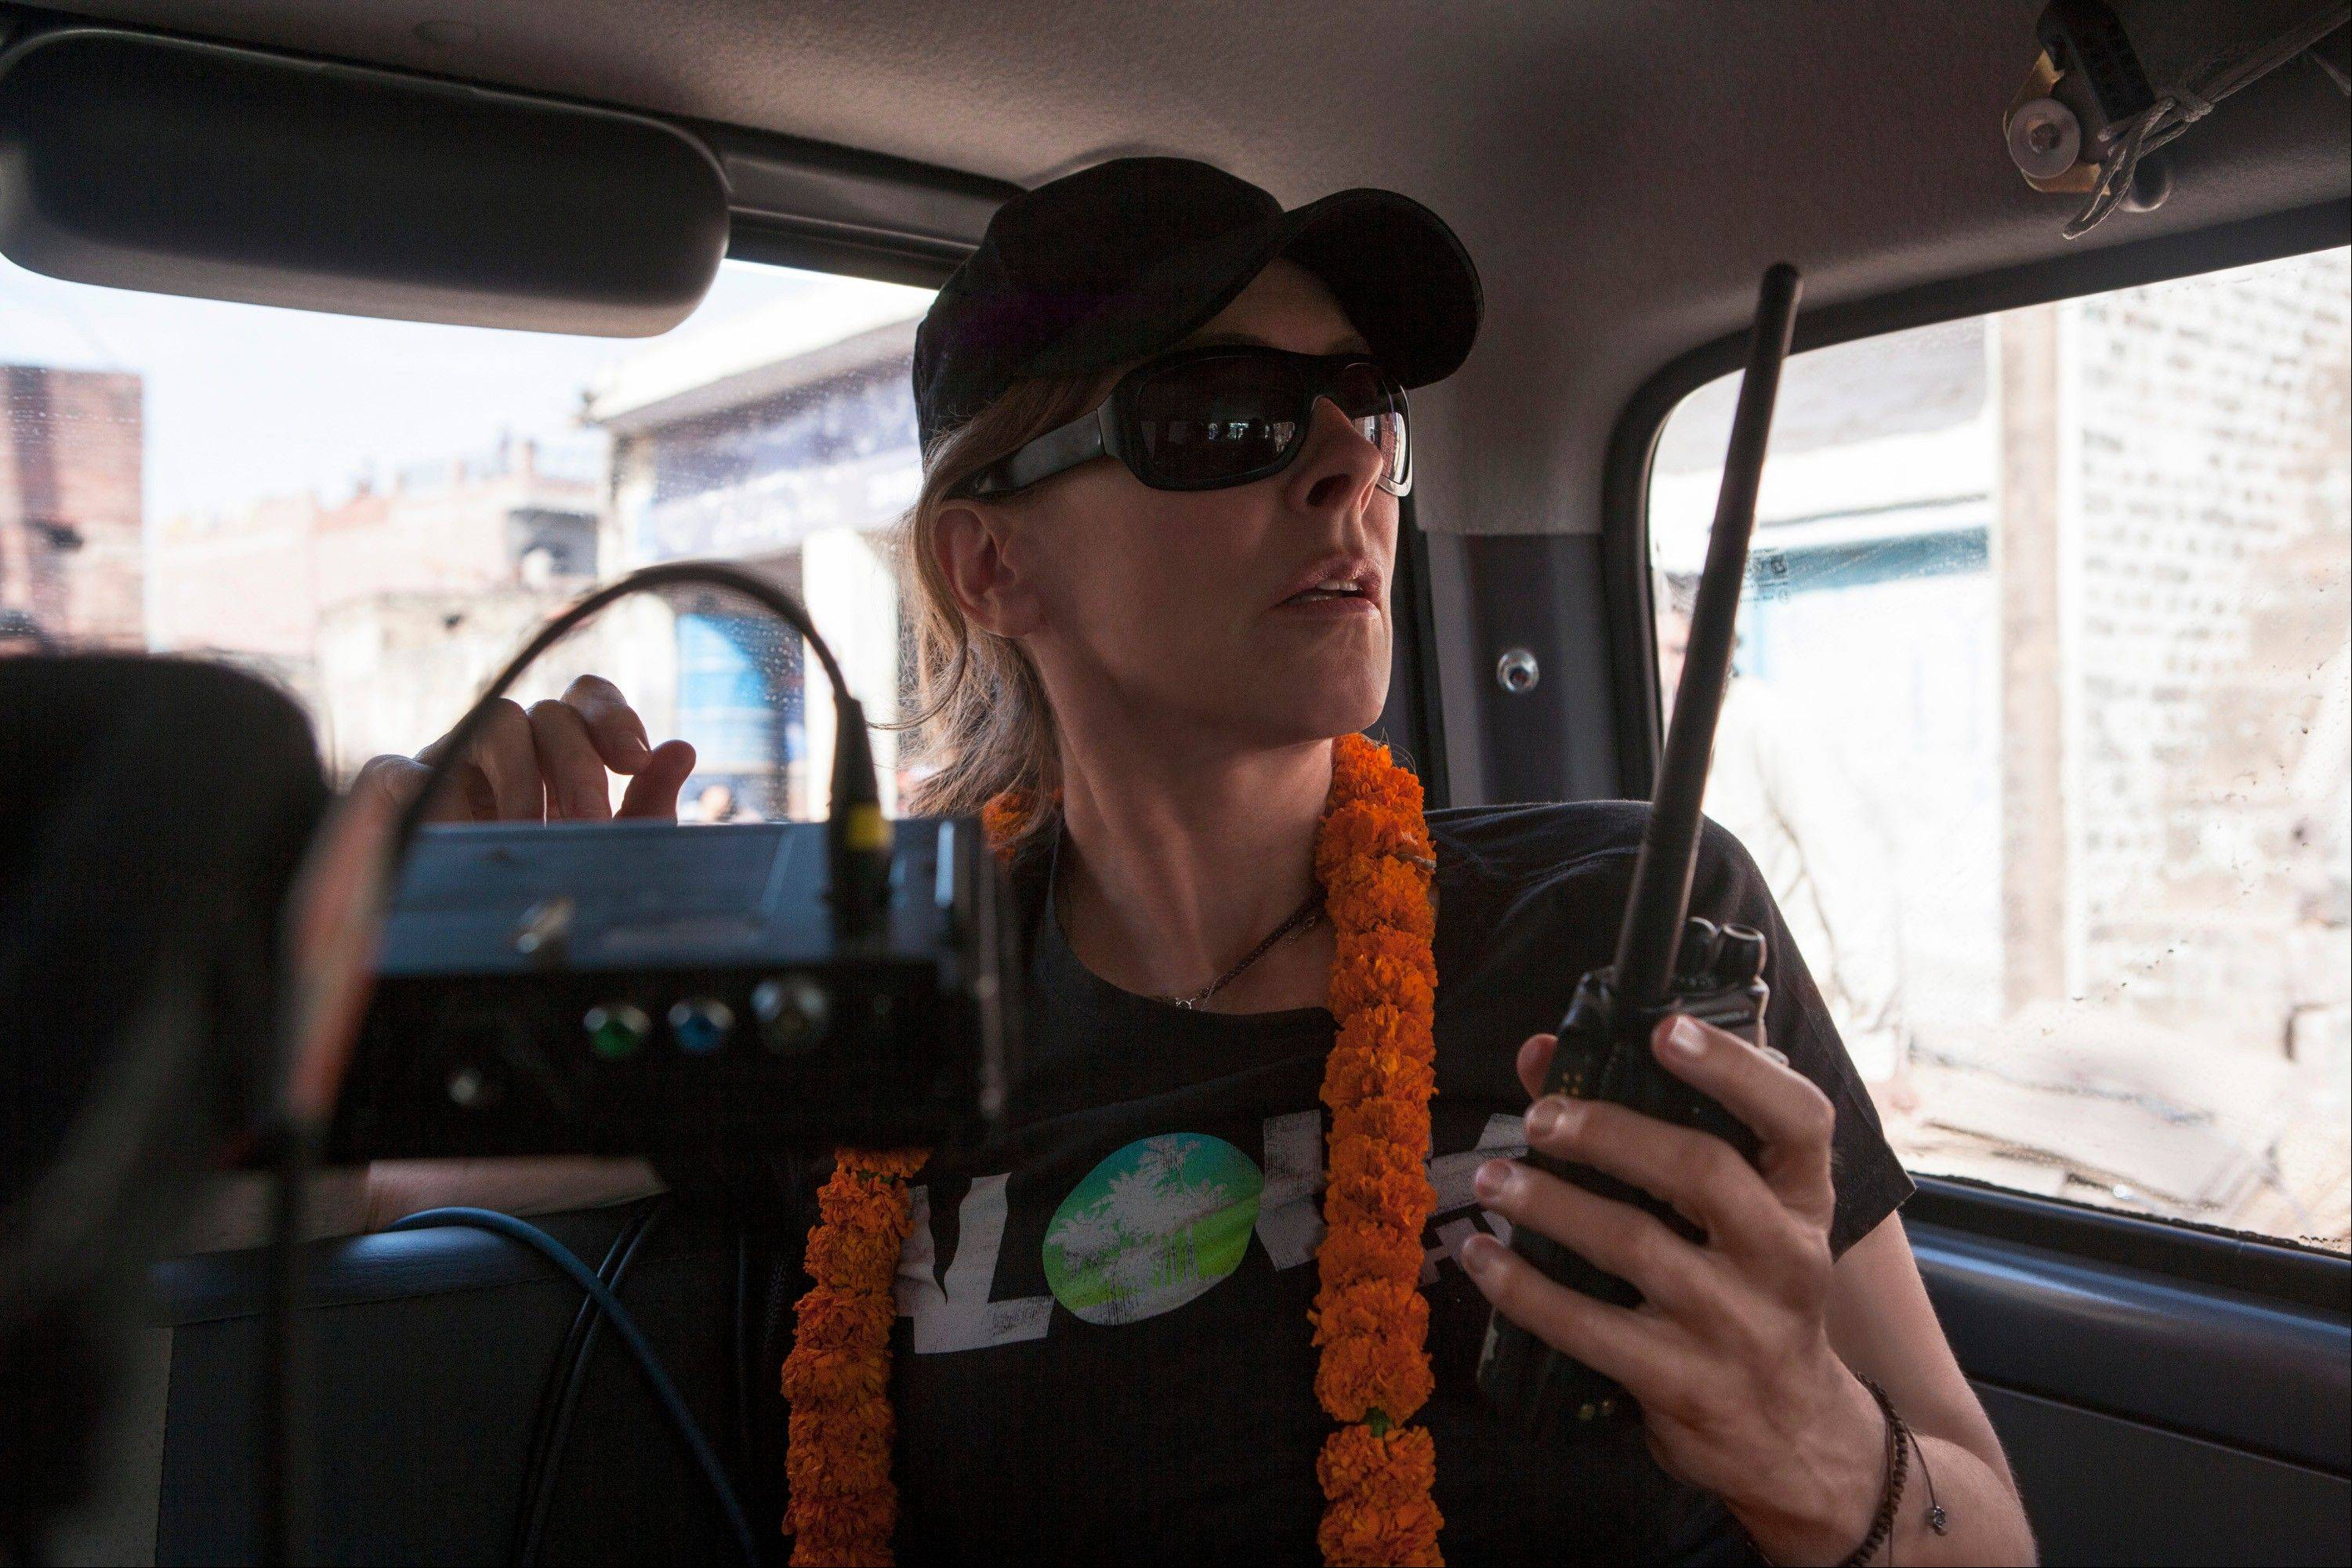 Director/producer, Kathryn Bigelow, on the set of �Zero Dark Thirty,� which chronicles the decade-long search for Osama bin Laden.